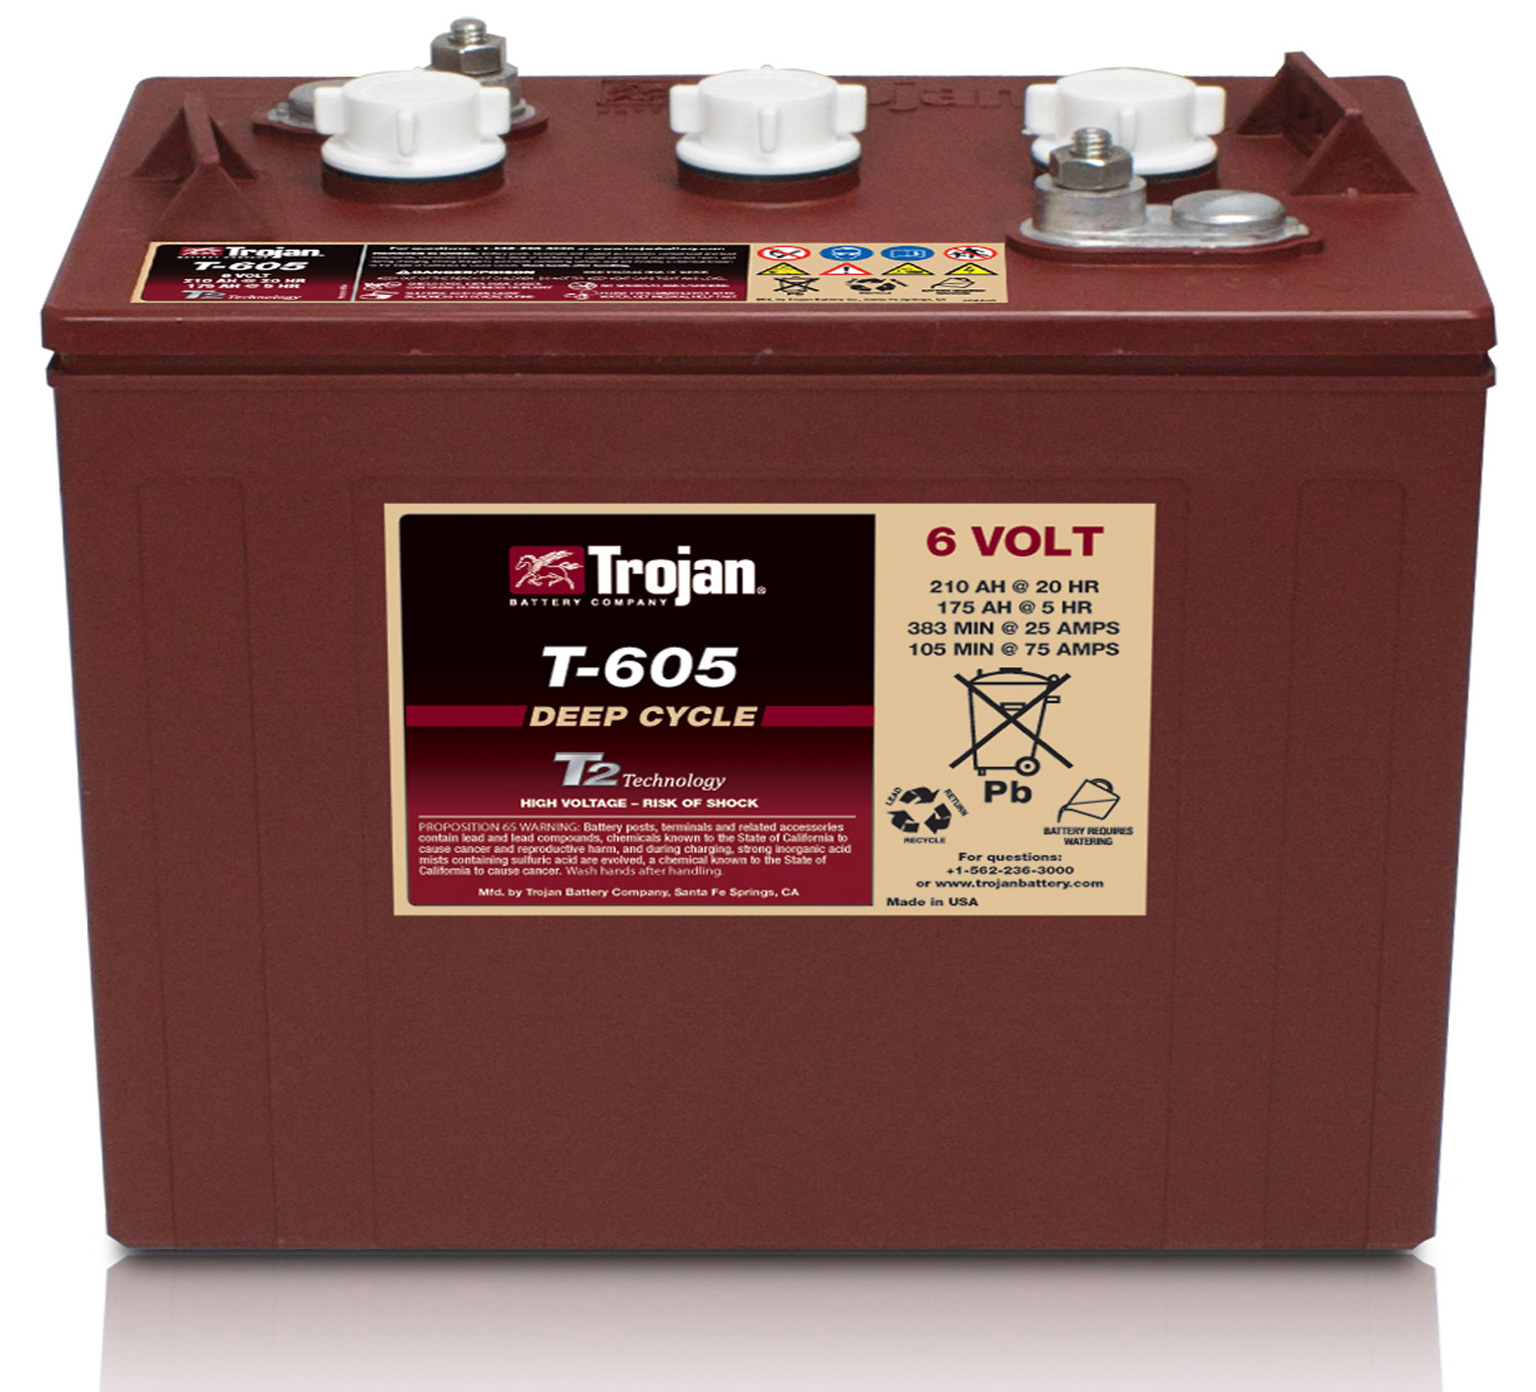 1227180 6 Volt Wet Trojan Battery Alt 1